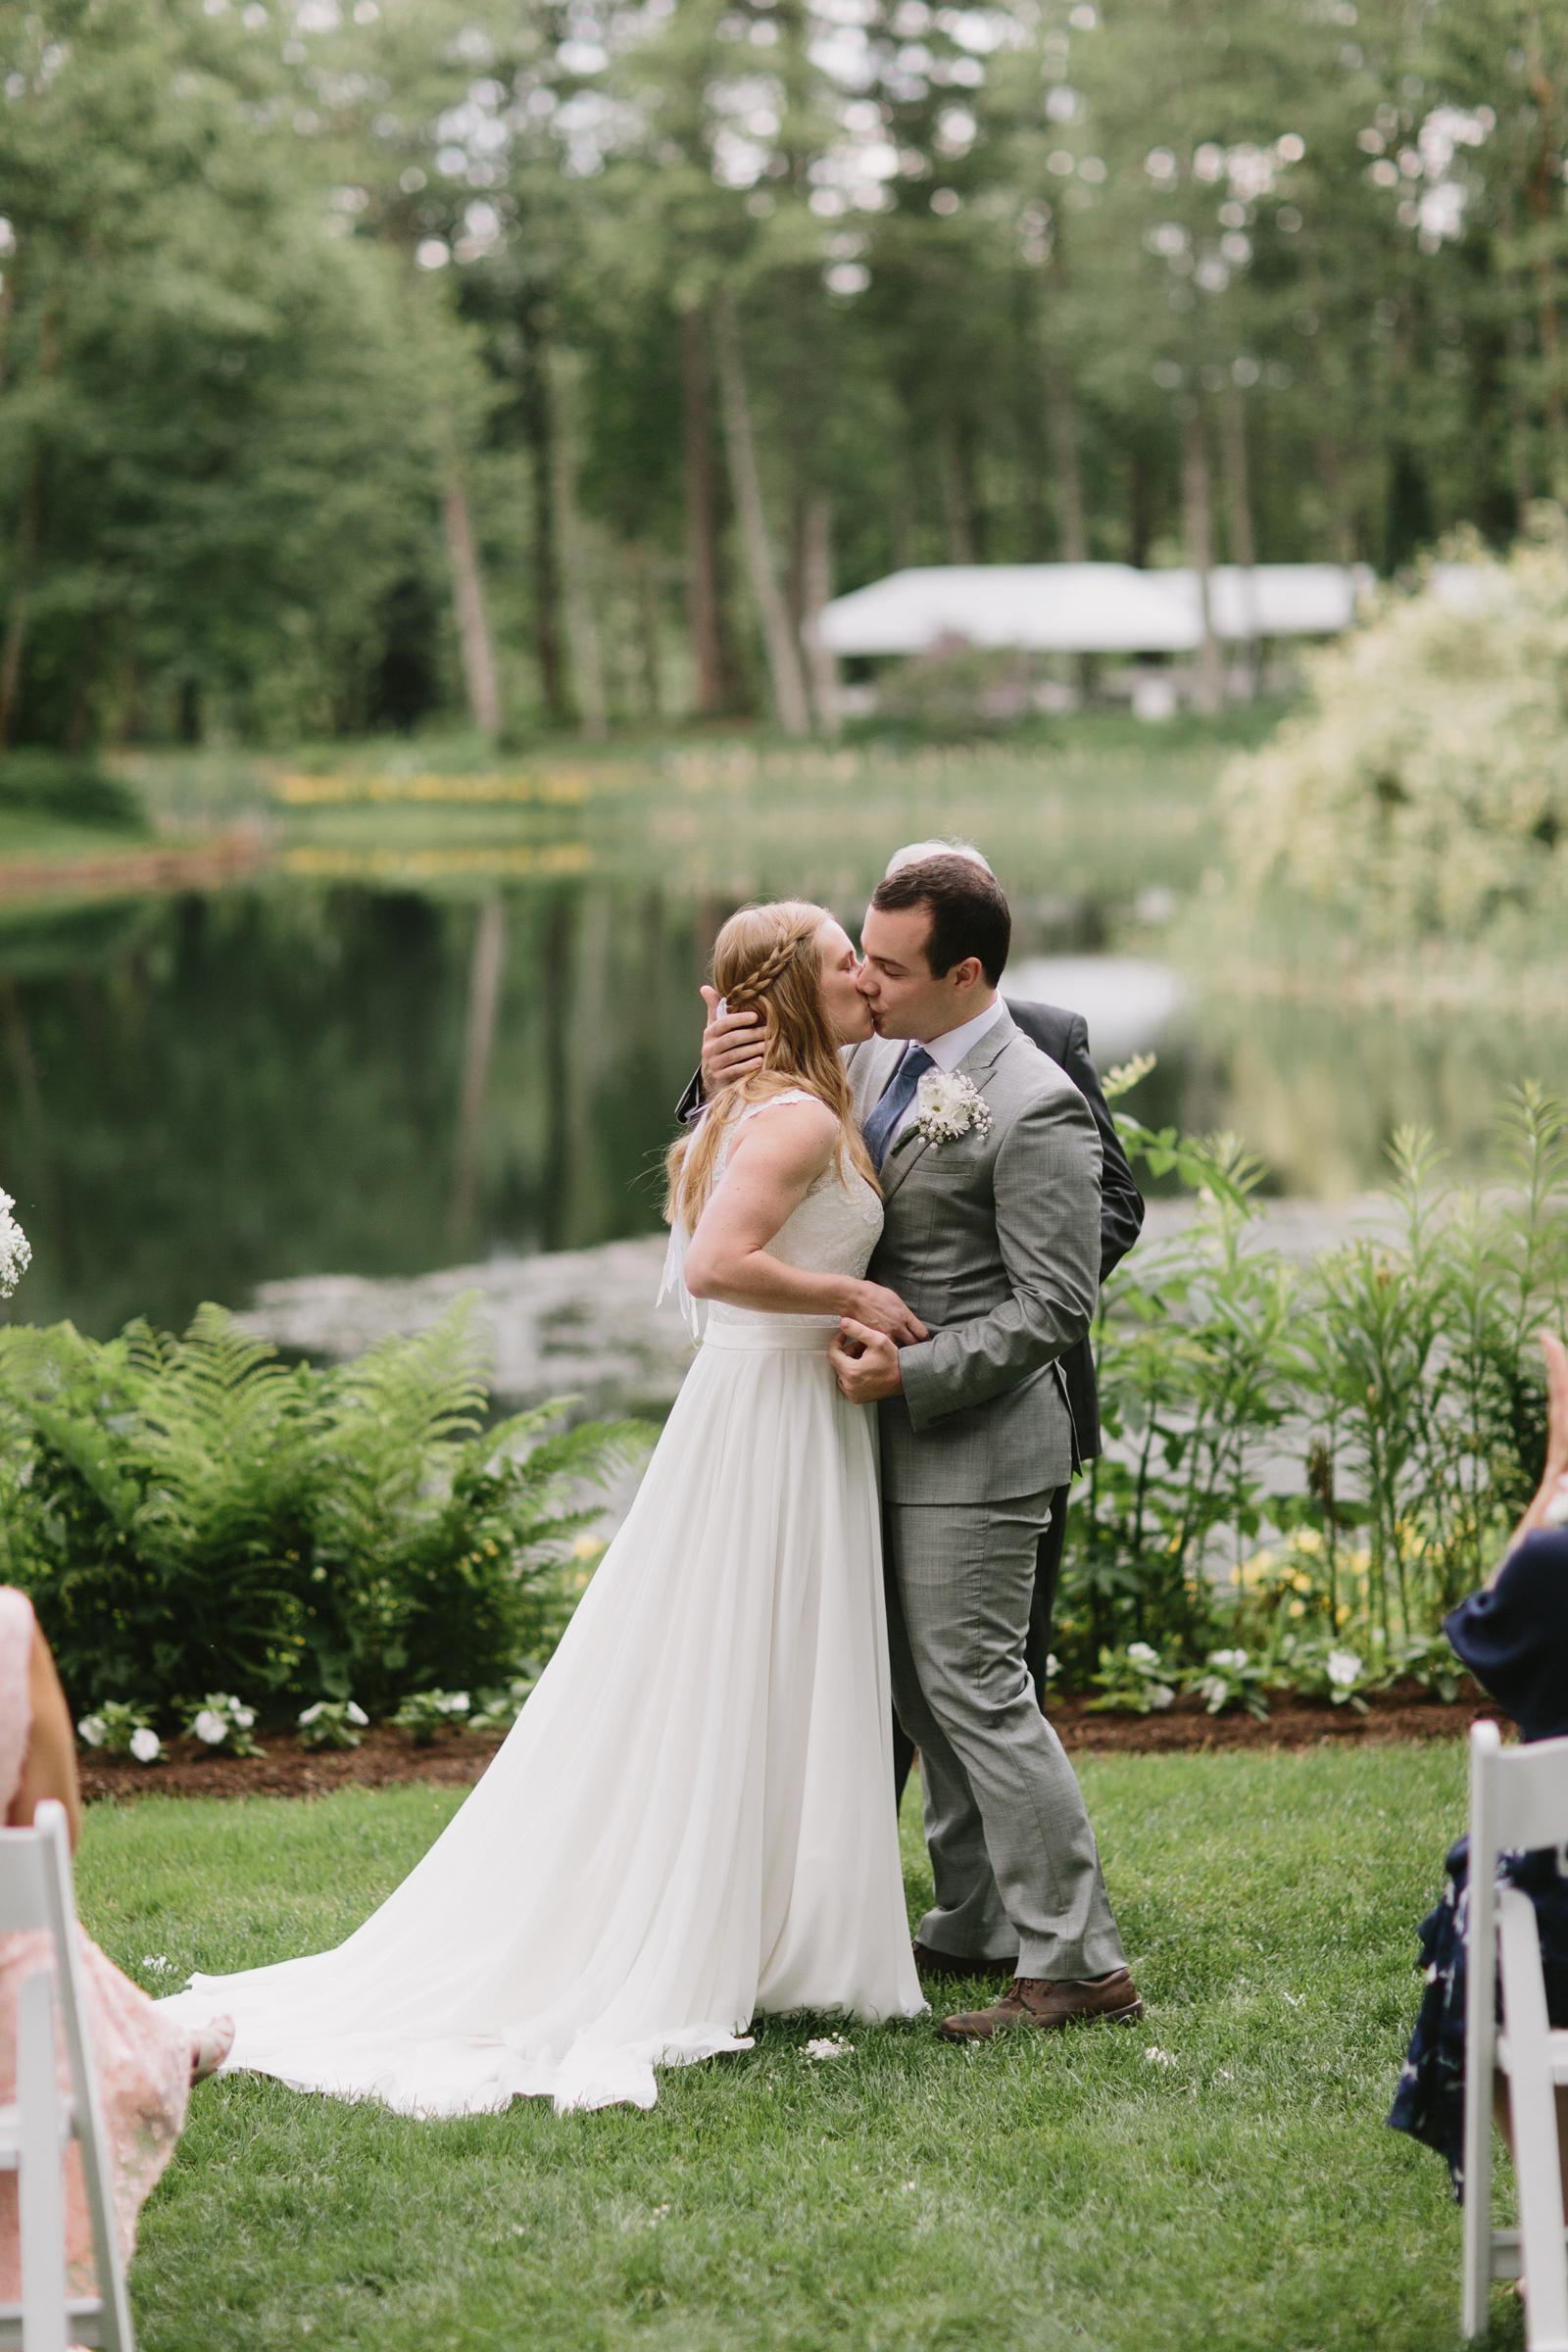 The first kiss between the bride and groom at Bridal Veil Lakes